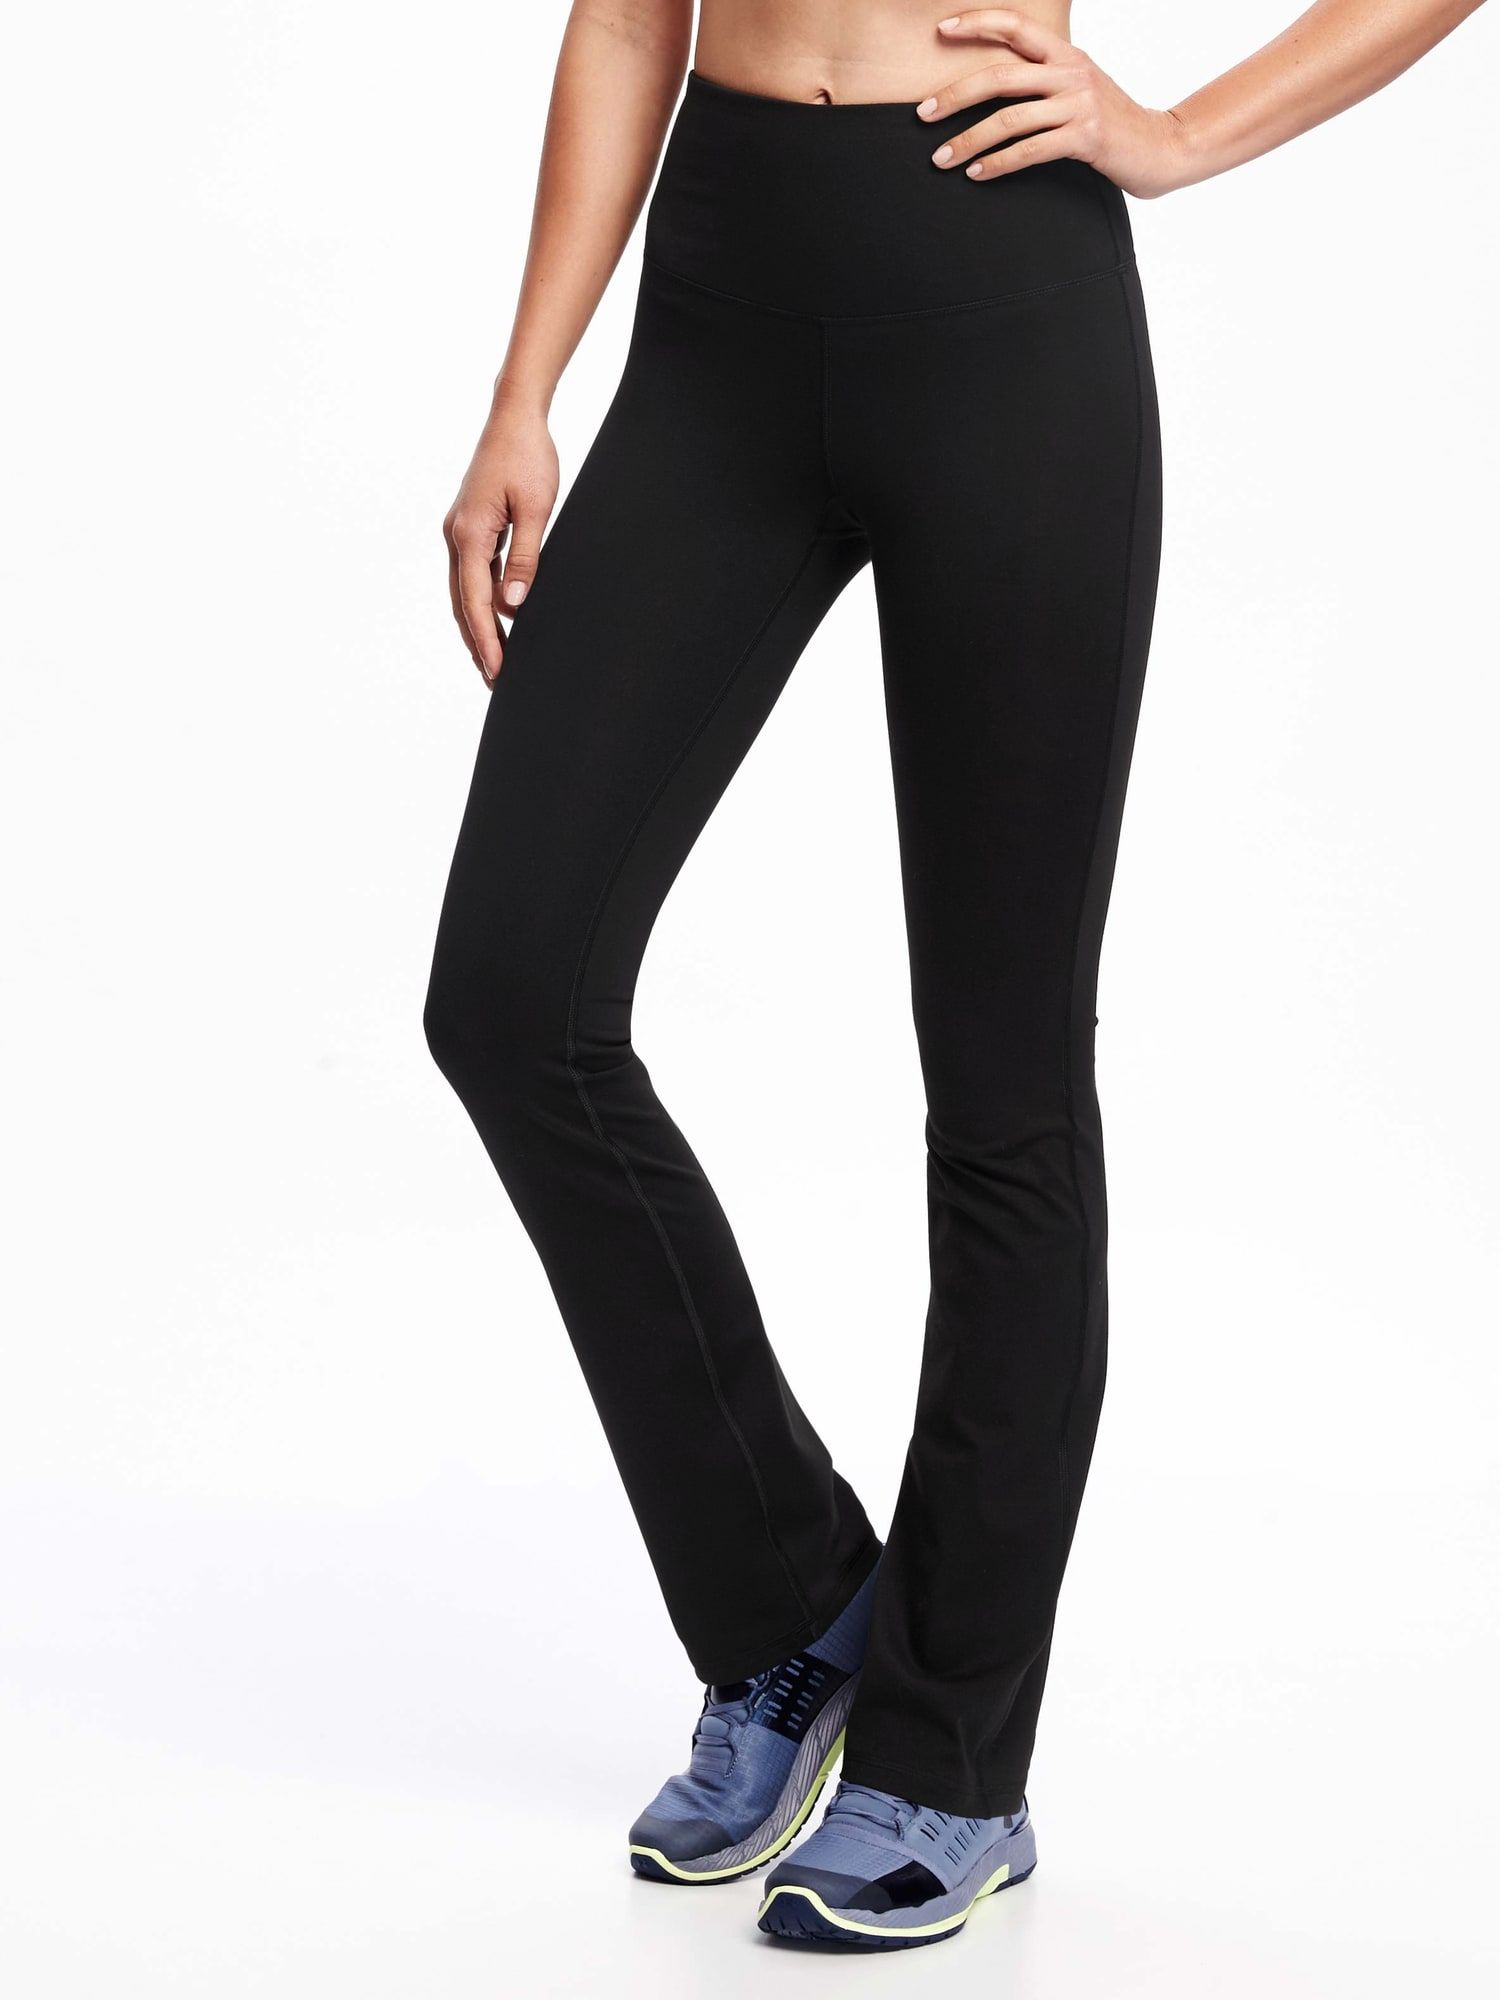 Old Navy Active Stretch Tech Pants